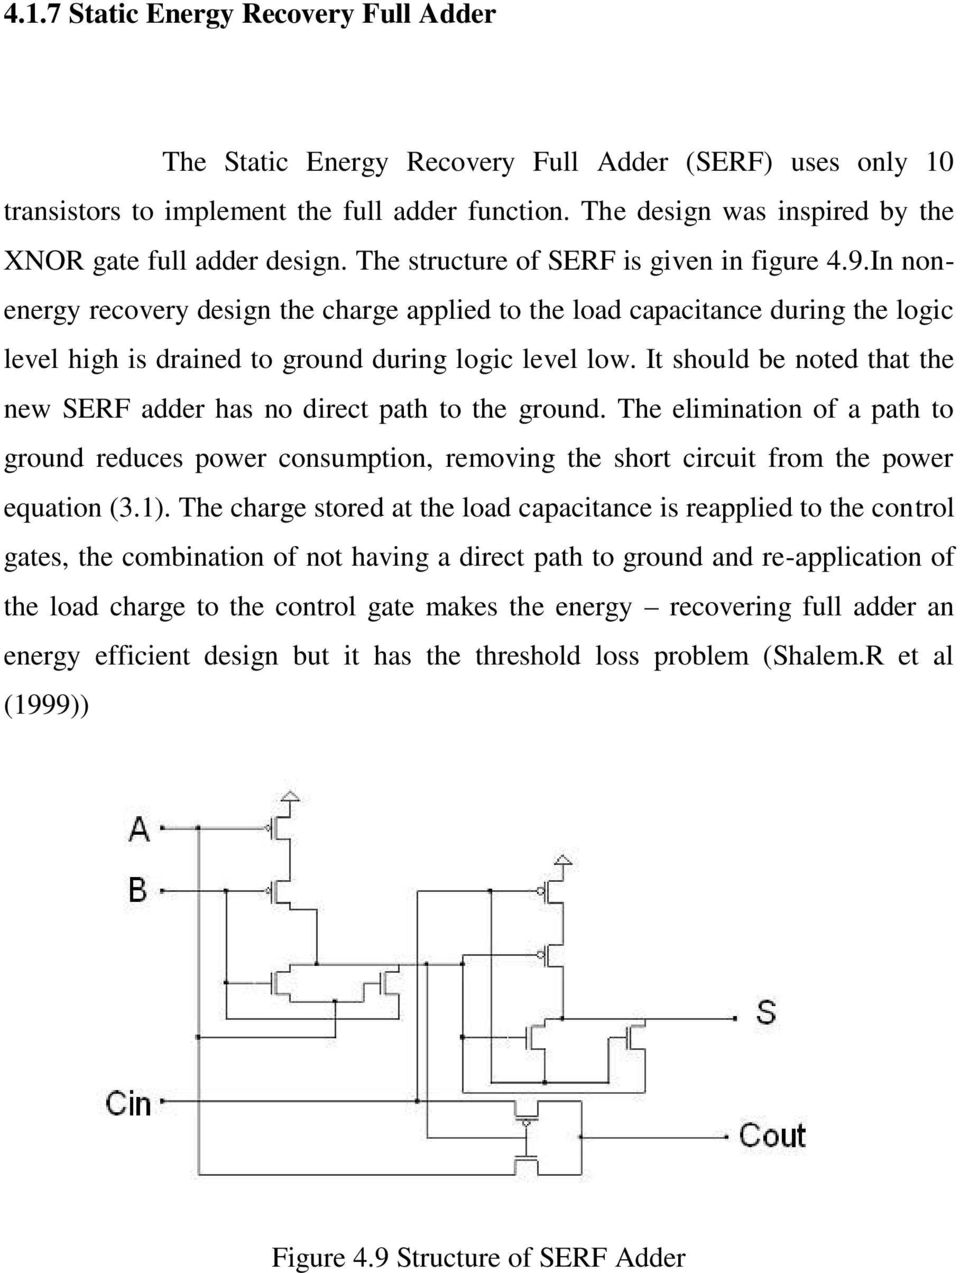 In nonenergy recovery design the charge applied to the load capacitance during the logic level high is drained to ground during logic level low.